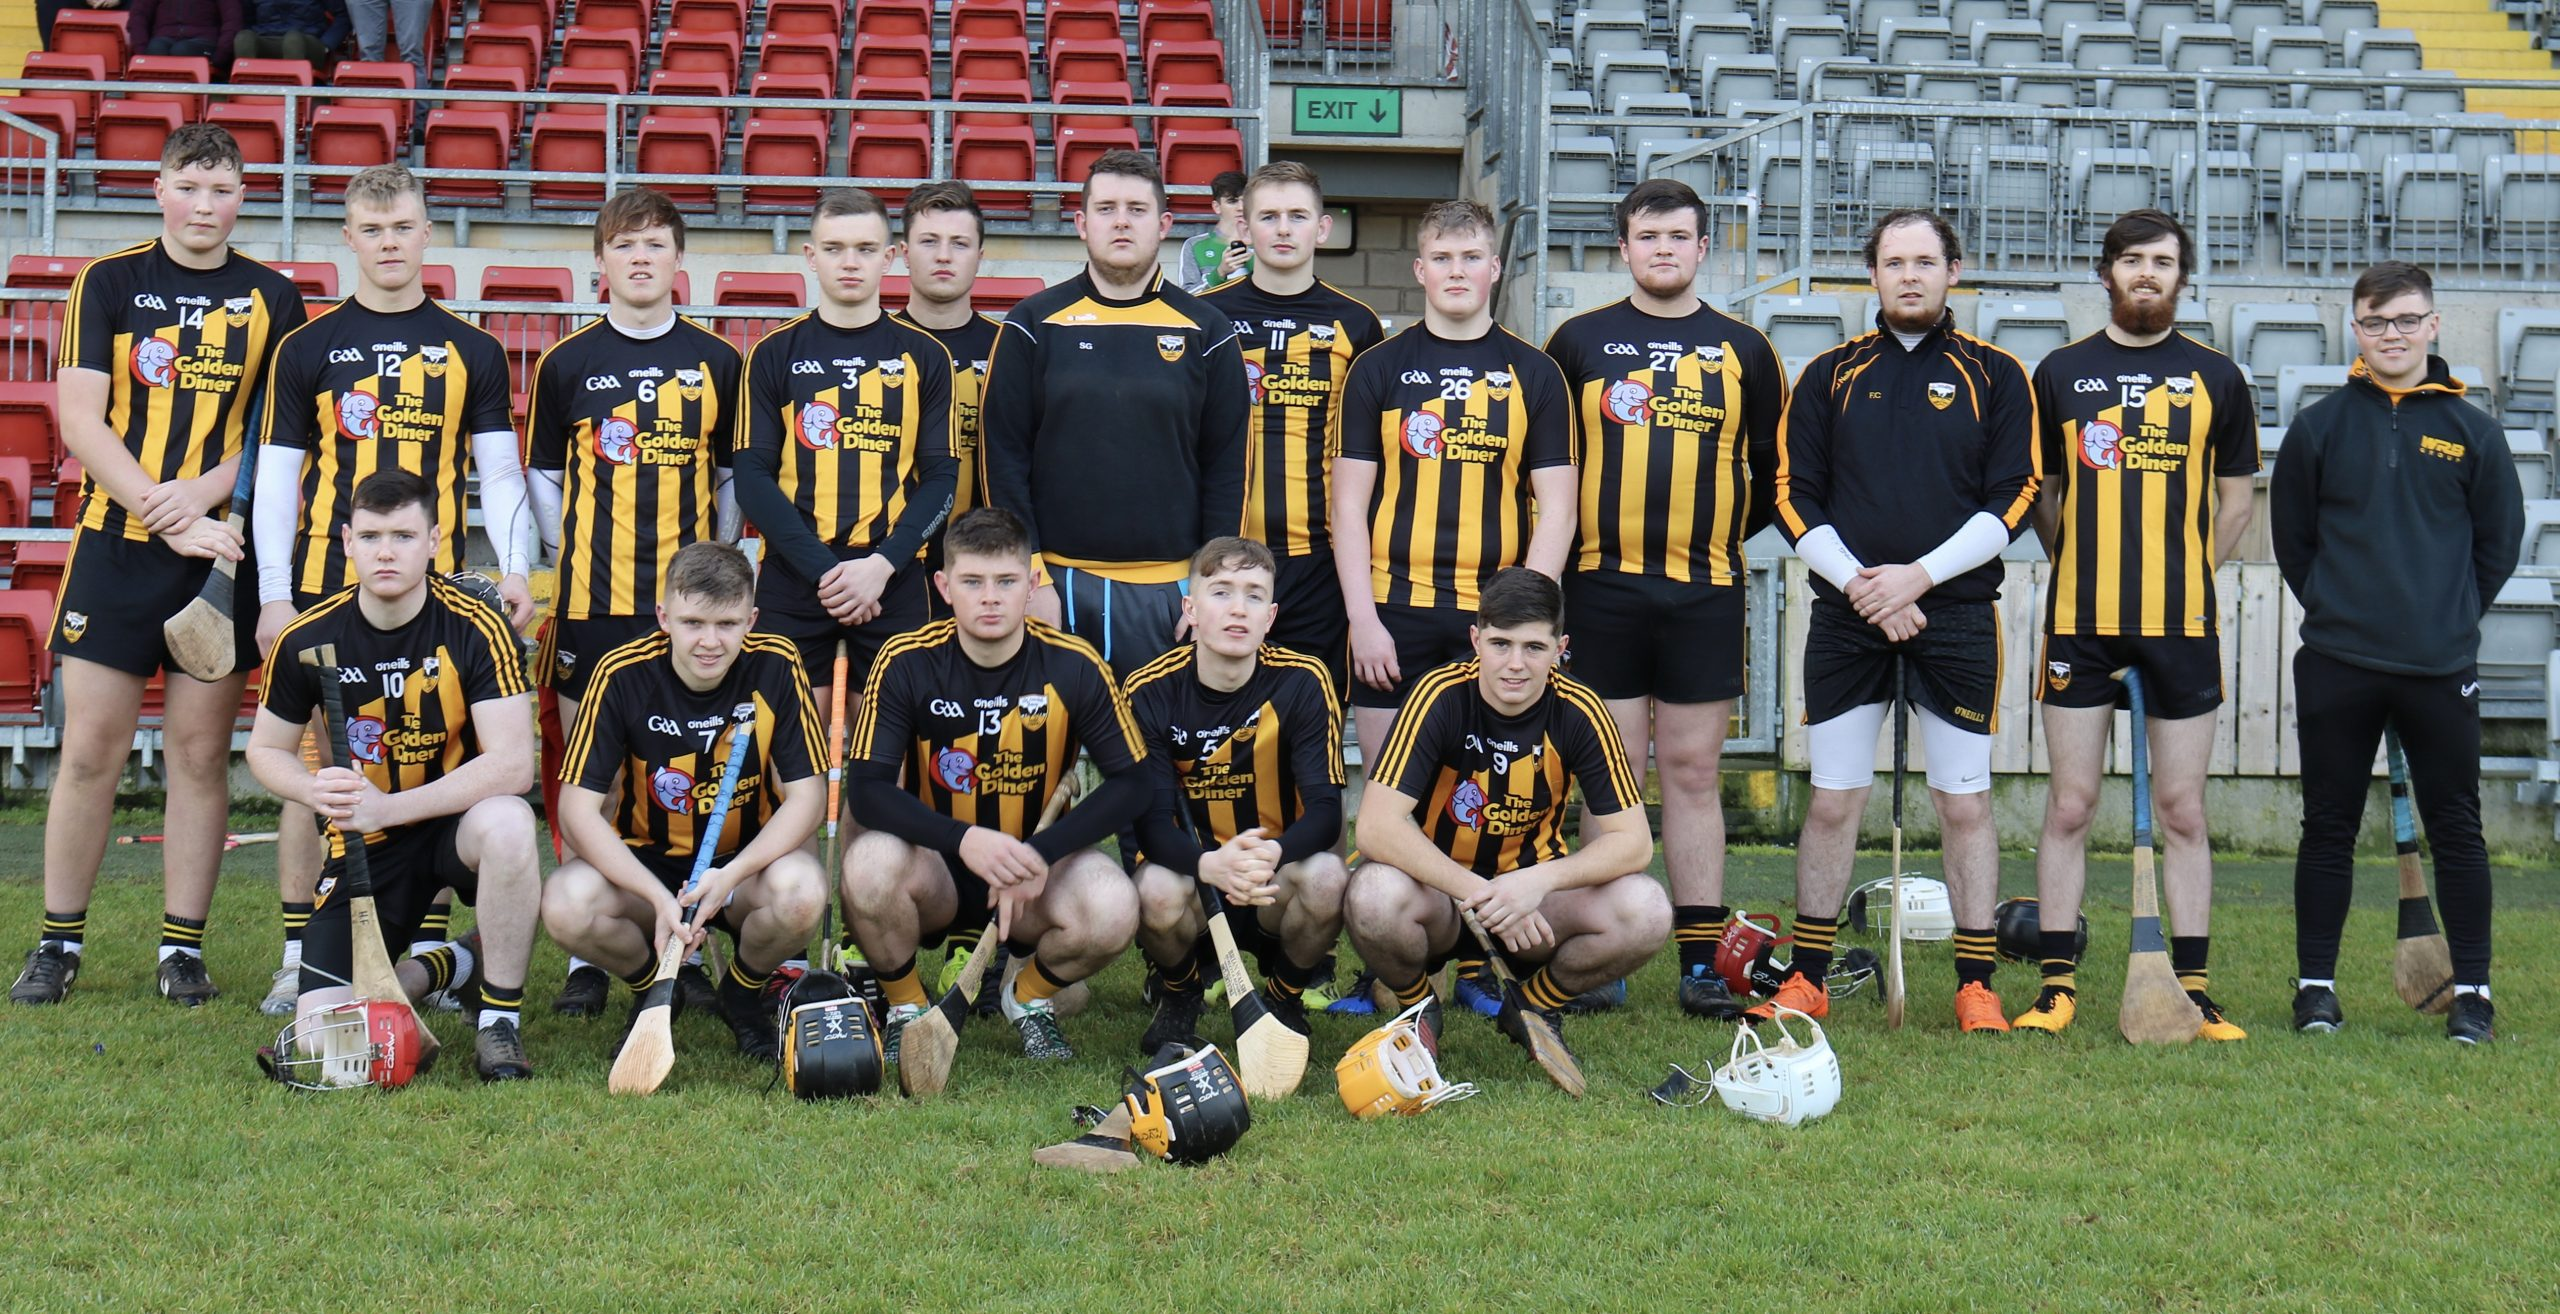 Ballycran's U21 squad progress to the final of the Joe McCrickard Cup